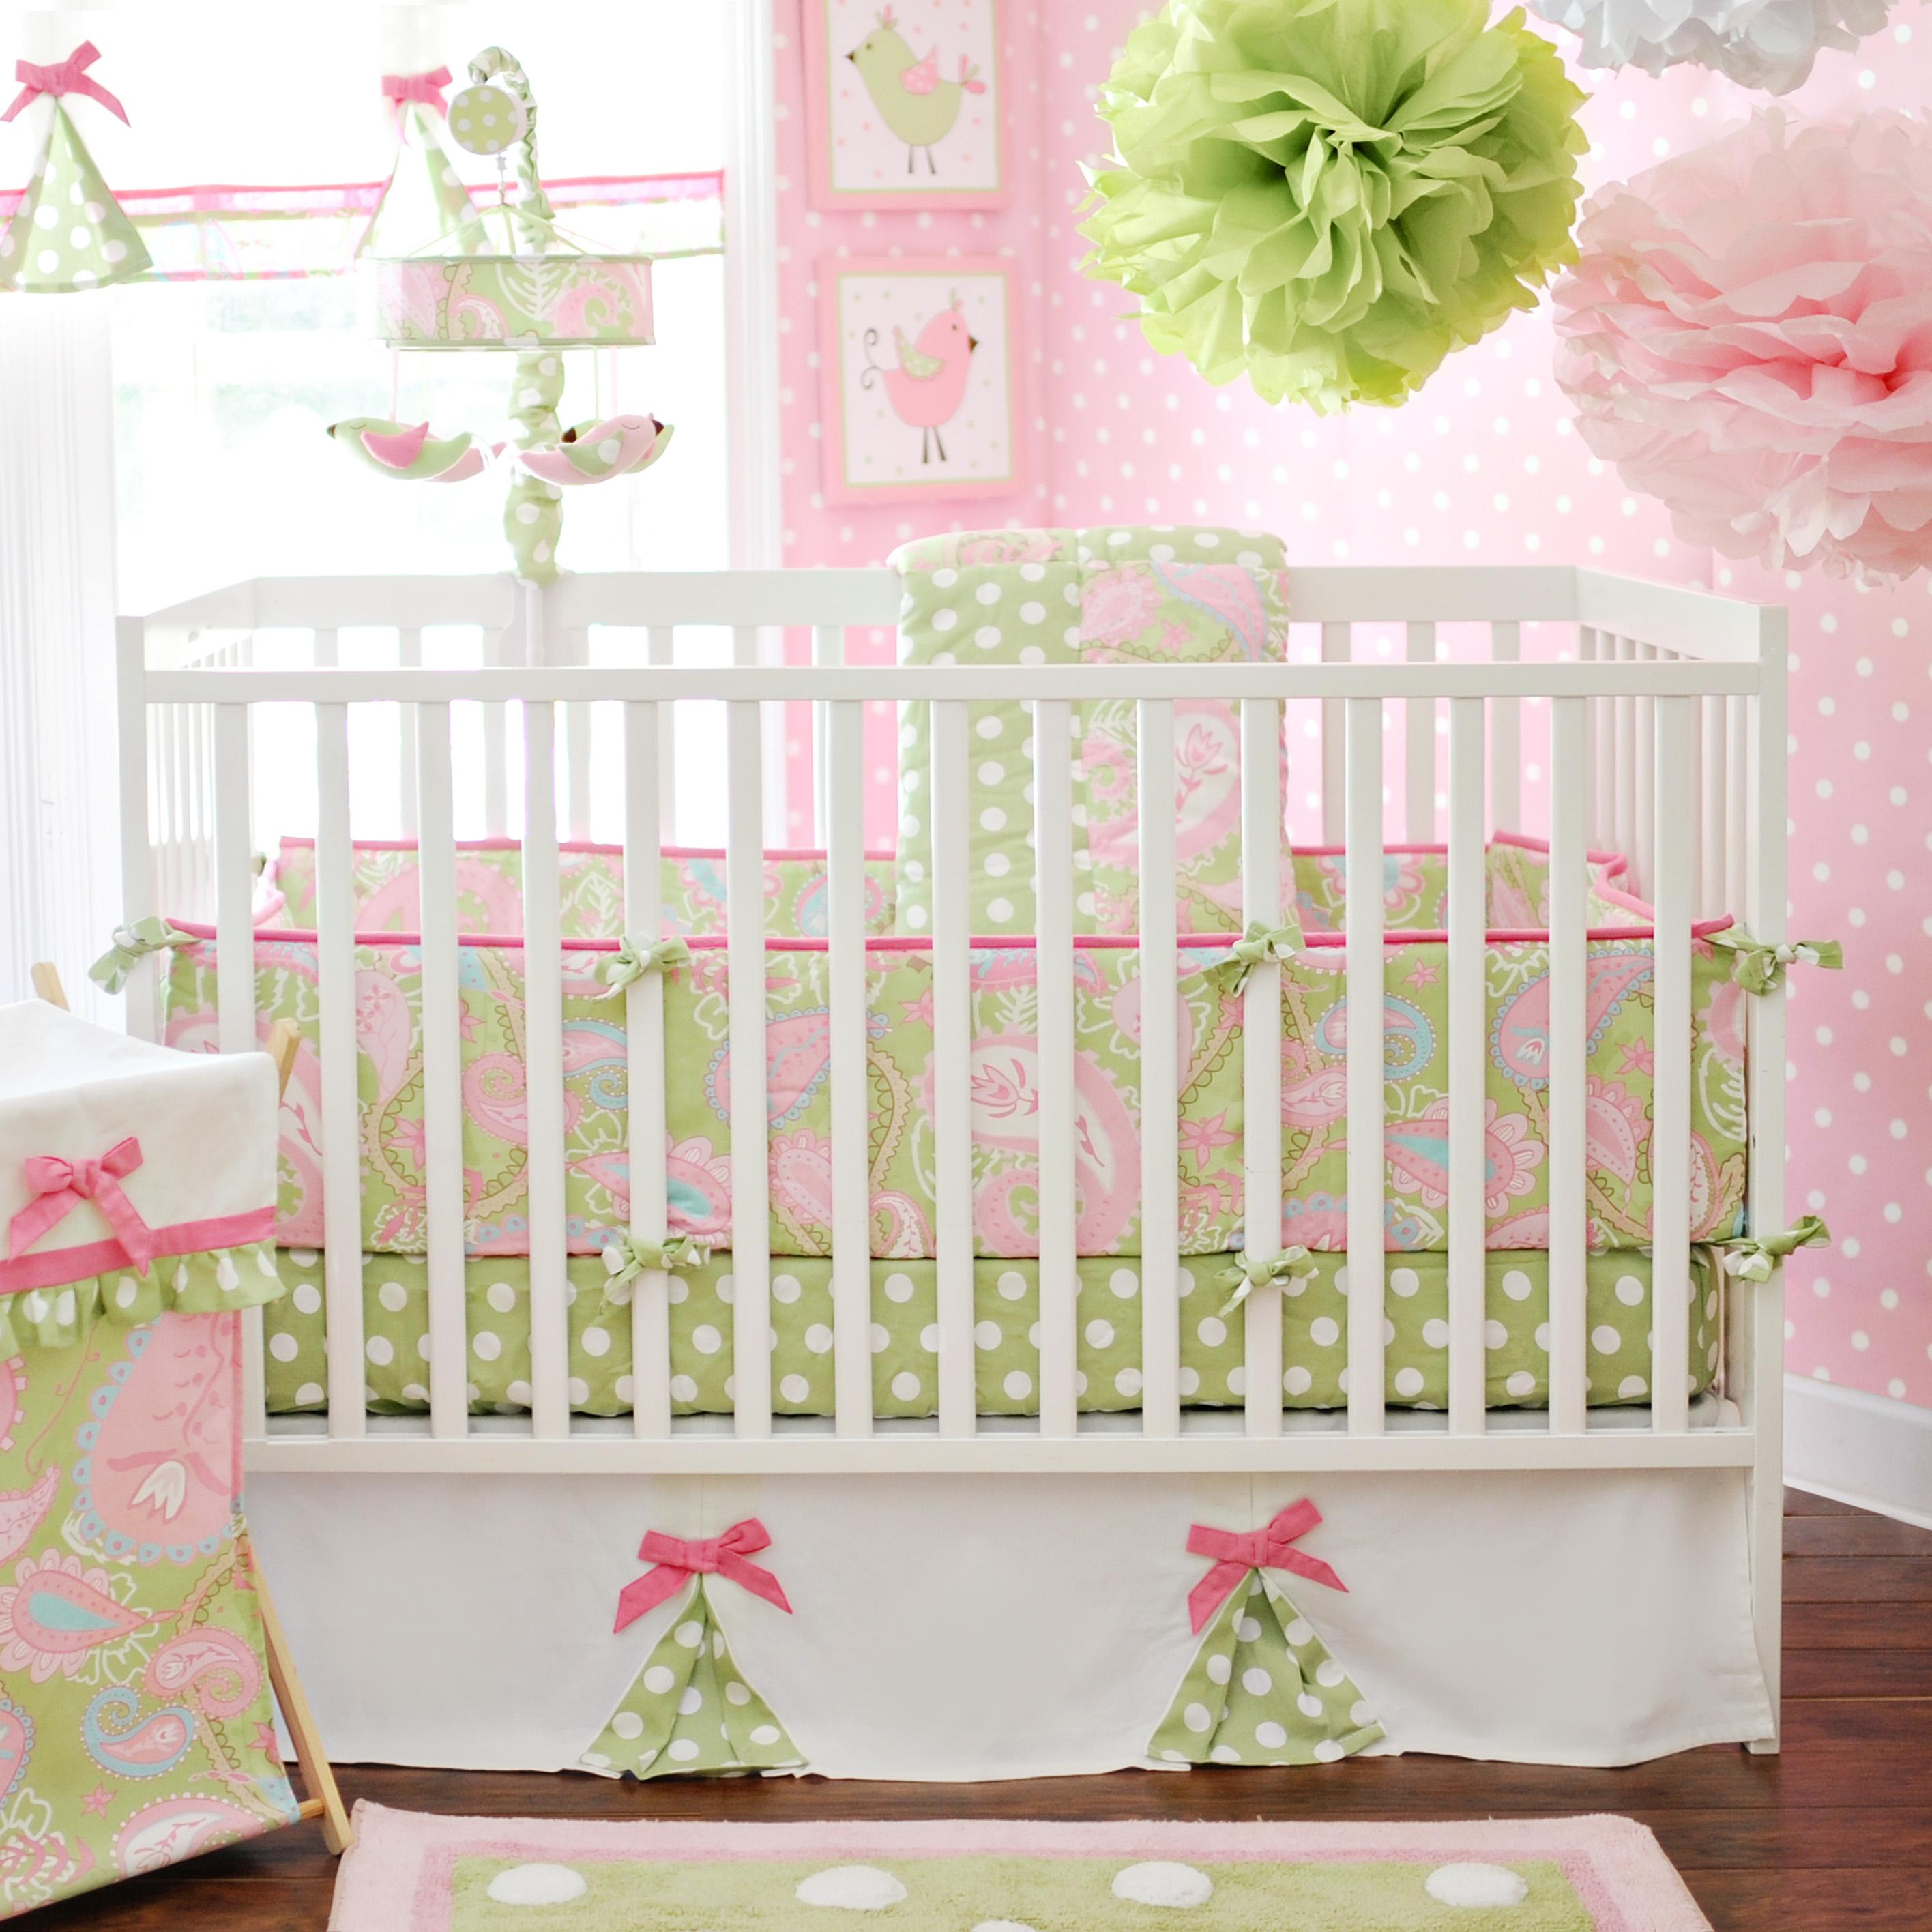 Pink and white polka dot bedding - My Baby Sam Pixie Baby Pink 4pc Baby Bedding Search Results Download Image Pink And White Polka Dot